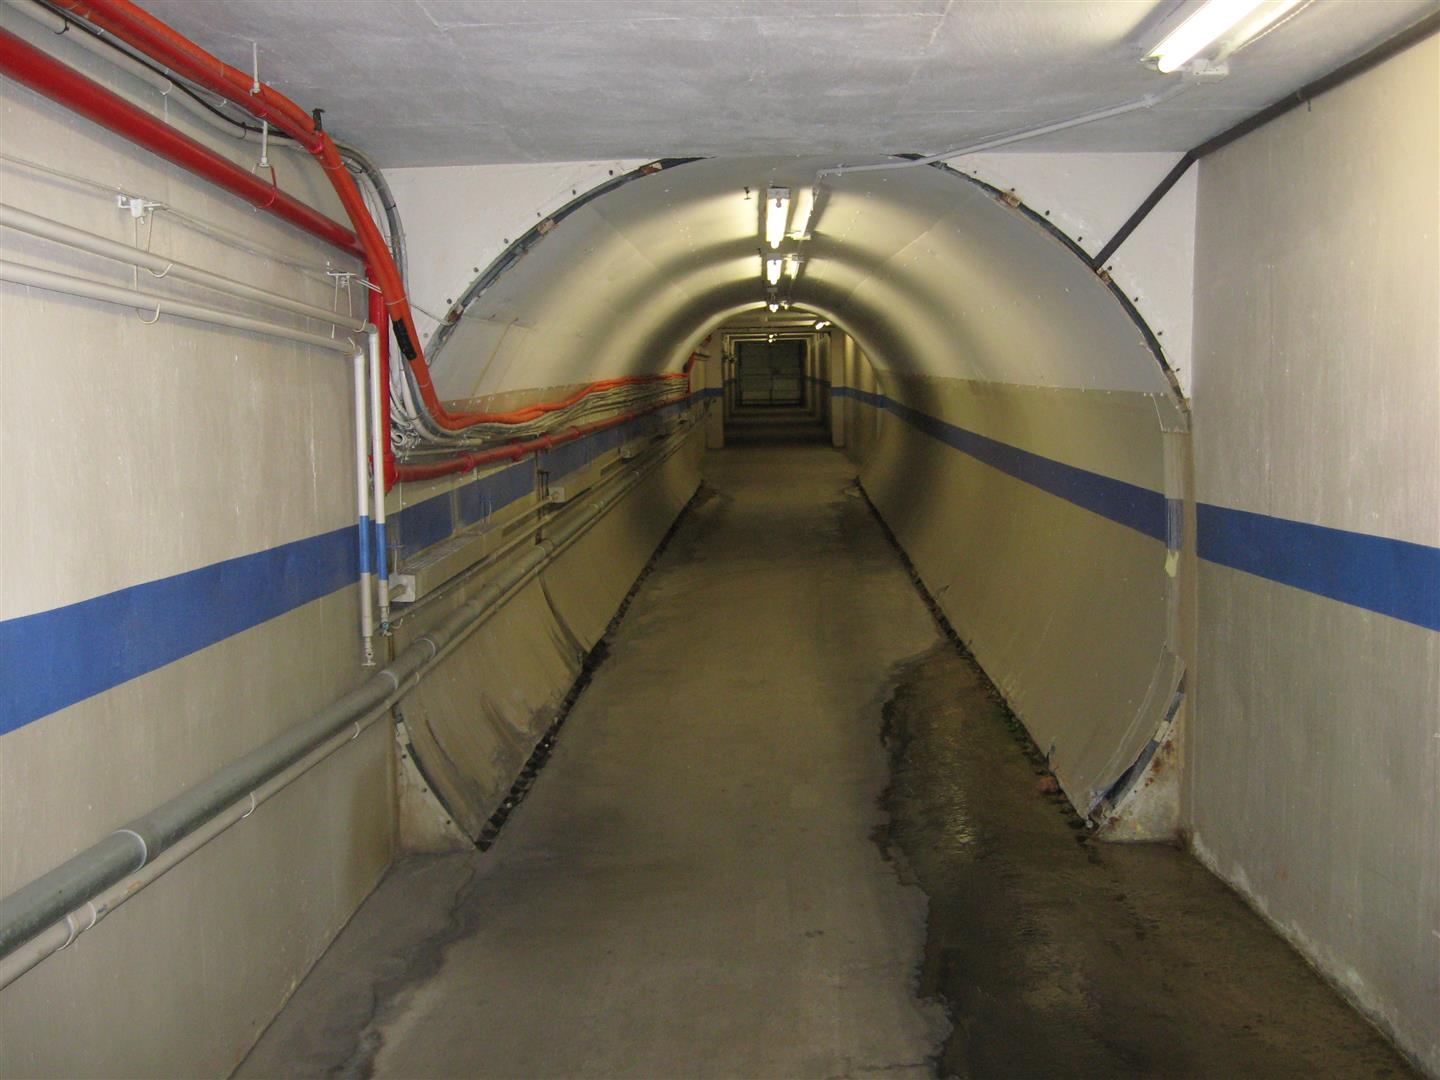 Pedestrian tunnel for industrial customer needed abandoned and filled with concrete under active railroad